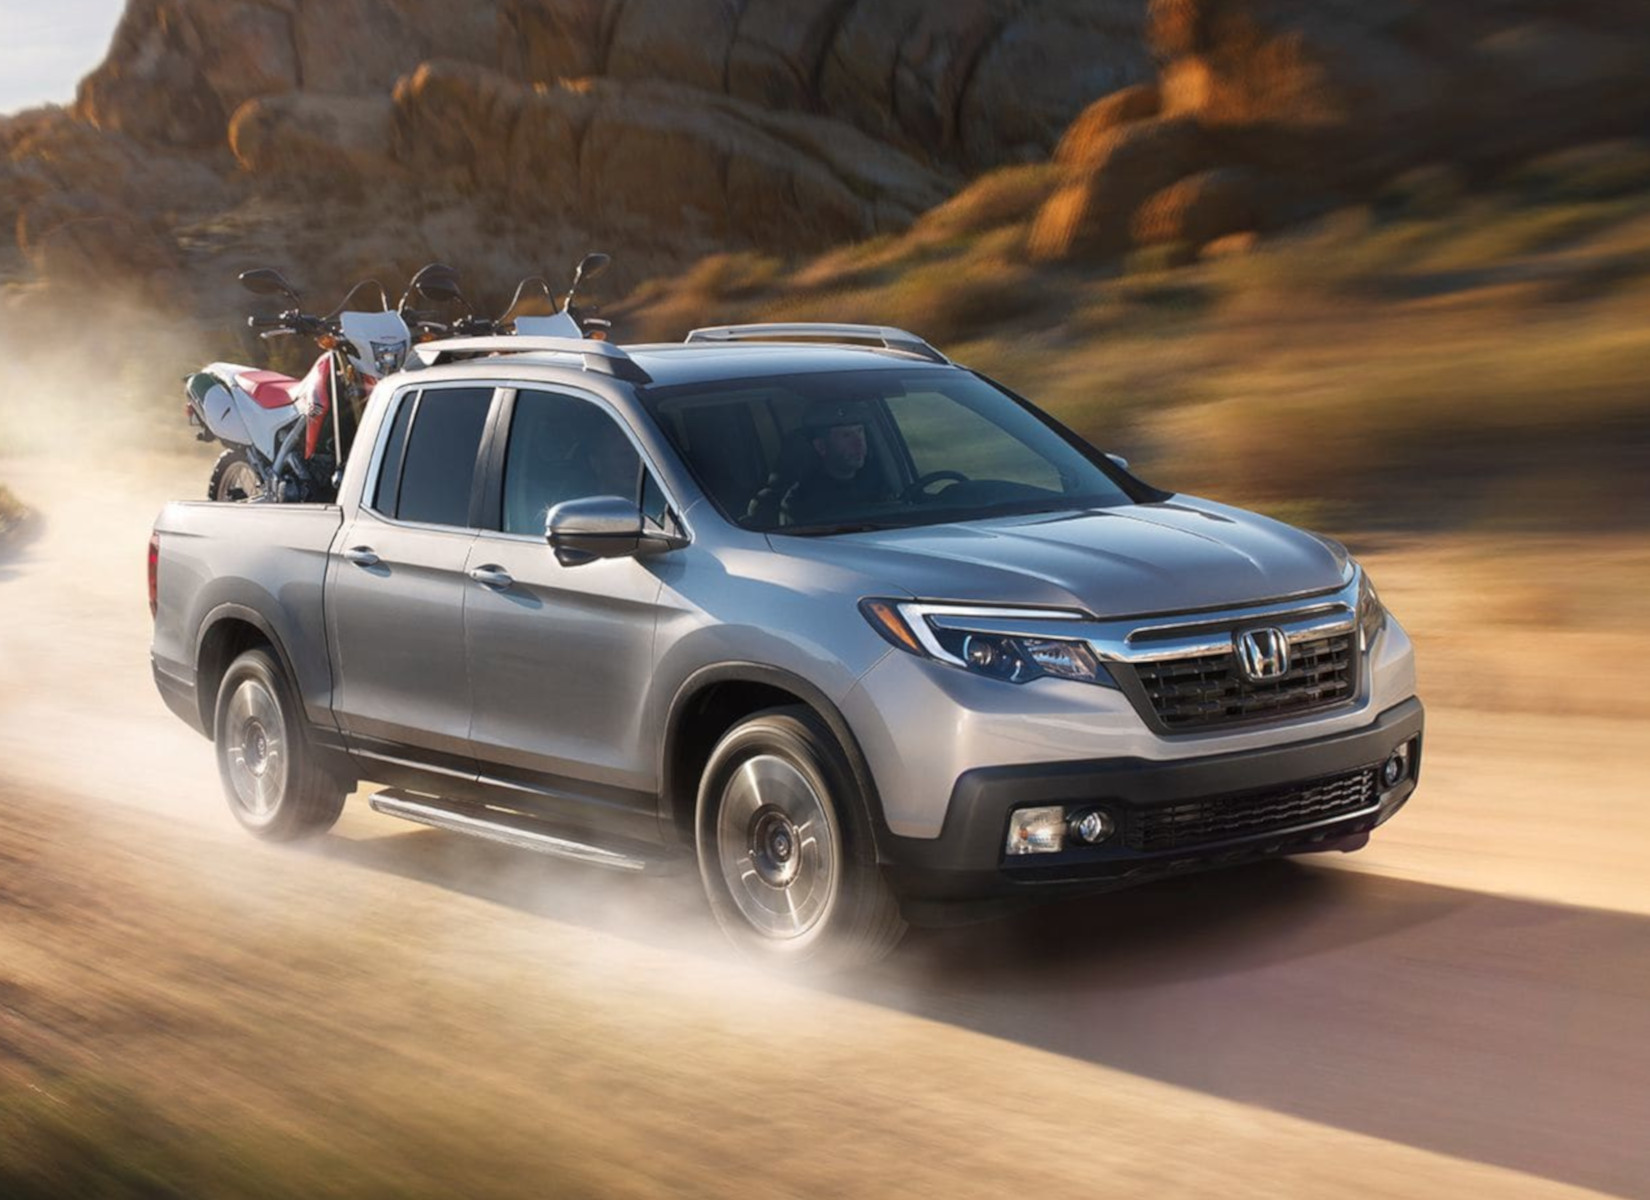 The 2019 Honda Ridgeline comes equipped with the latest safety features